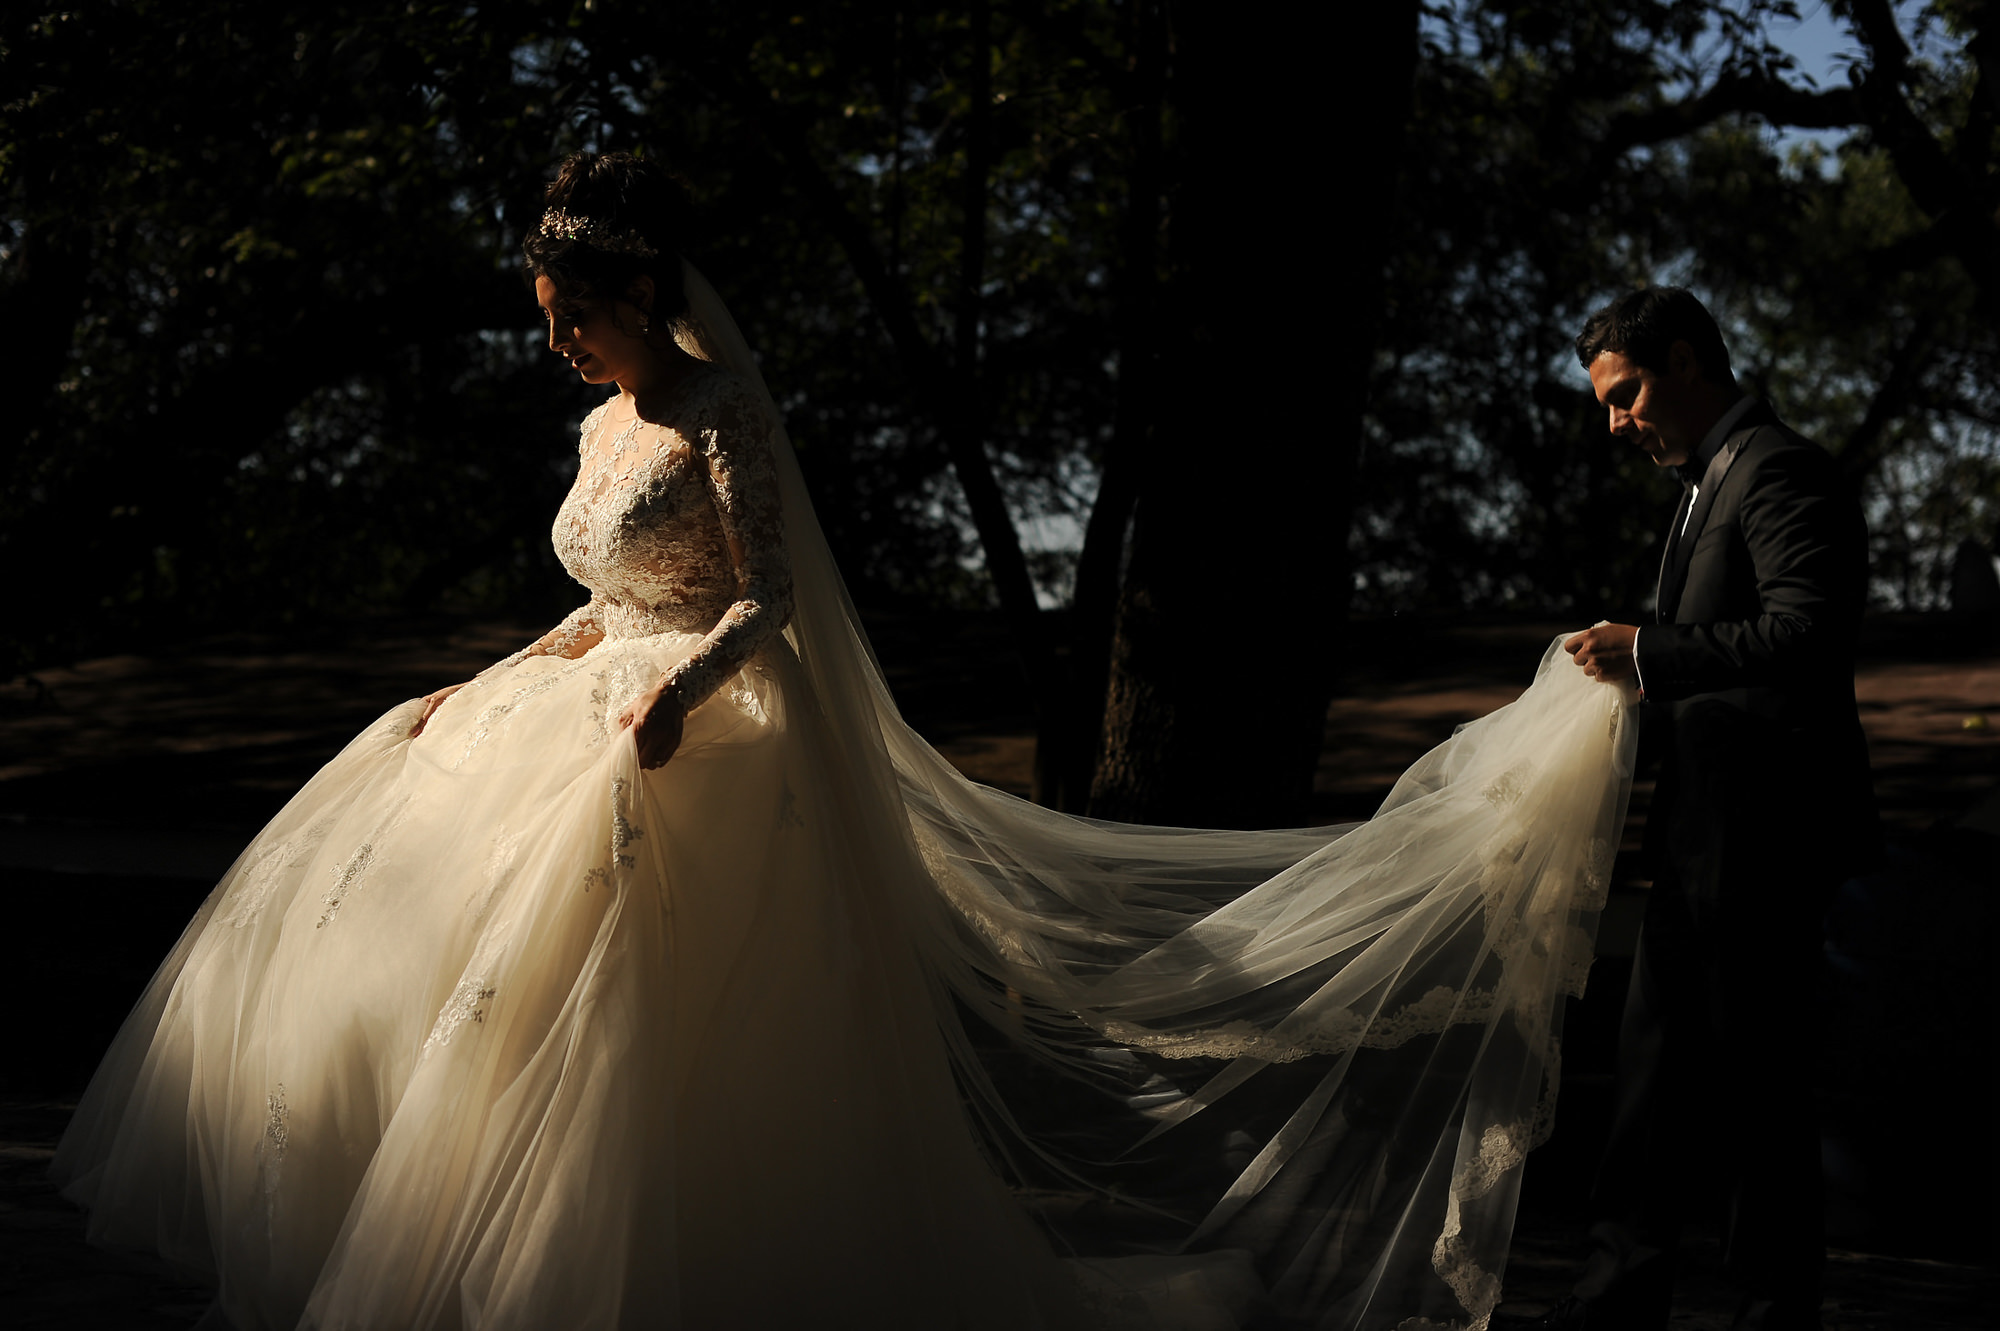 Groom carrying brides veil and train in beautiful light - photo by Daniel Aguilar